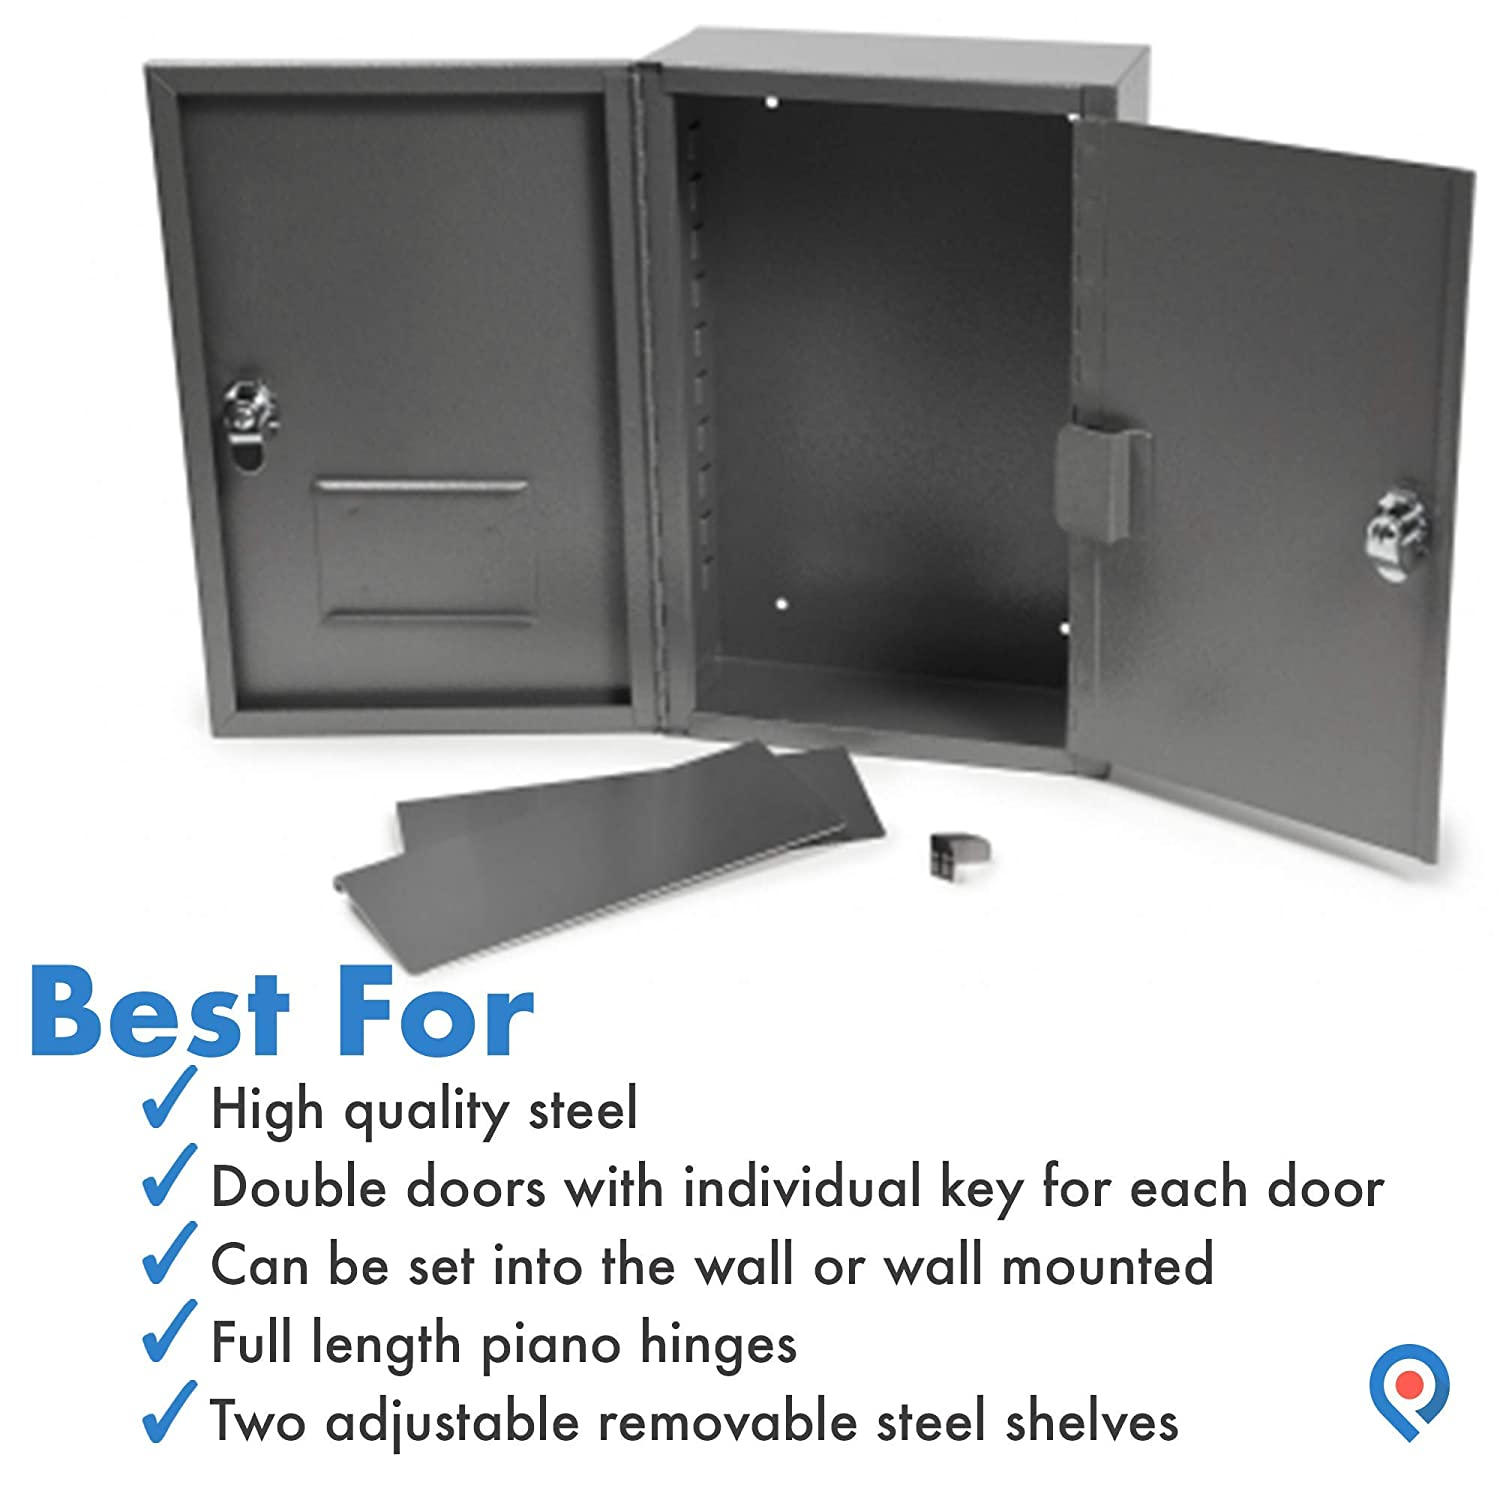 24 x 16 x 8 22 lbs Steel Welded Construction Pivit Large Medical Narcotic Security Cabinet Safe Two Adjustable Removable Steel Shelves Dual Doors Individual Key for Each Door